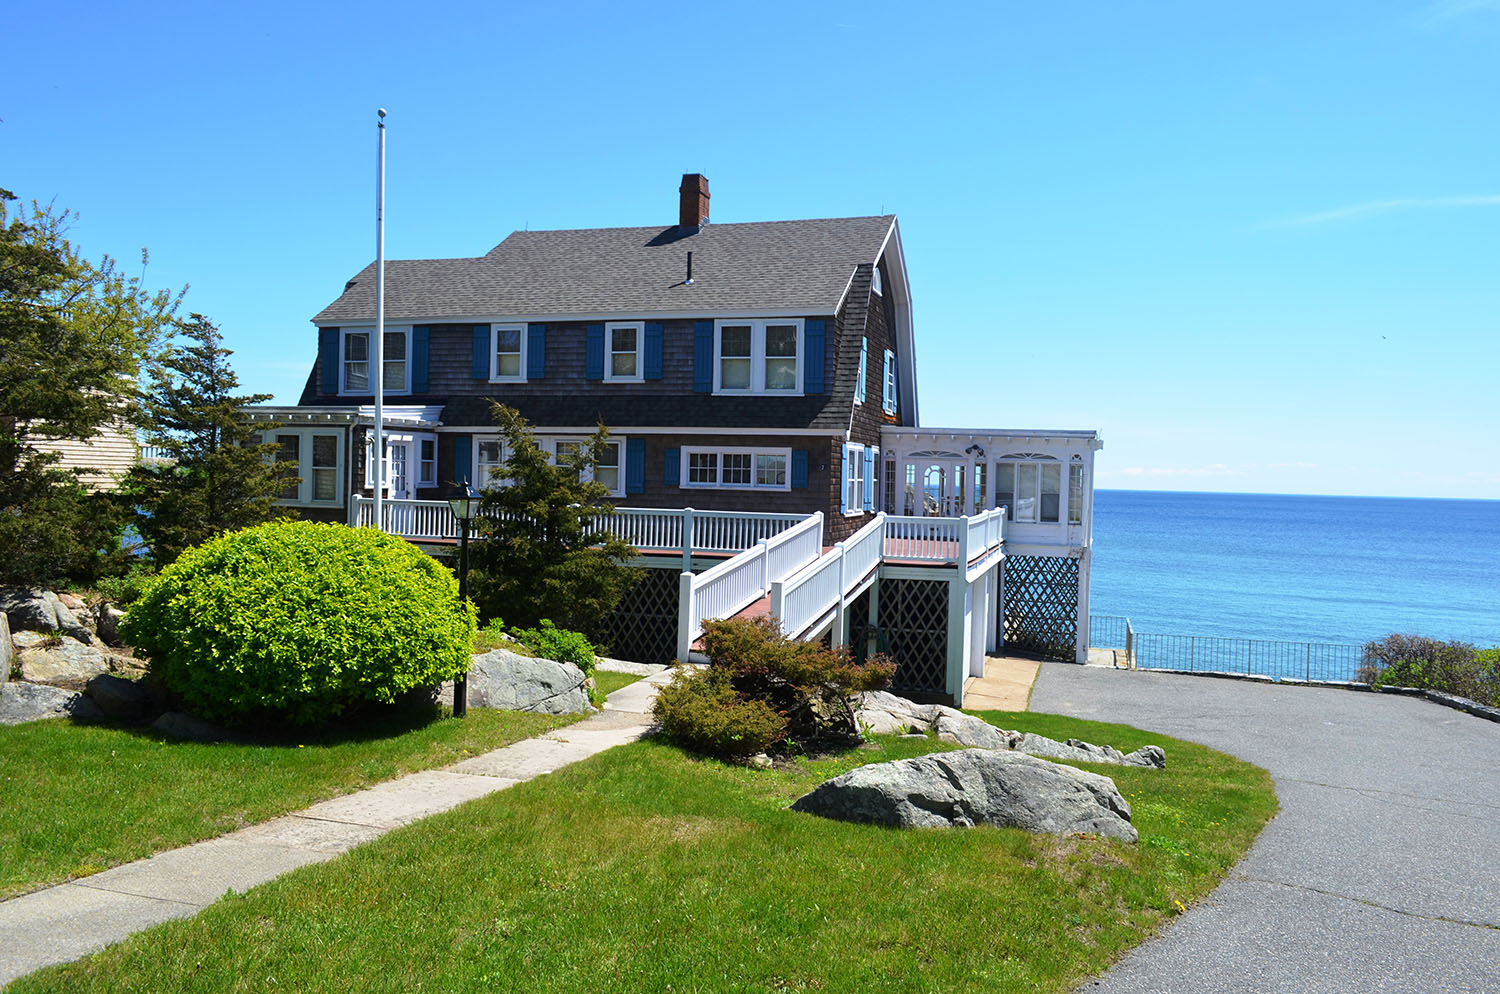 Oceanside at Good Harbor - Gloucester MA Vacation Rental Home